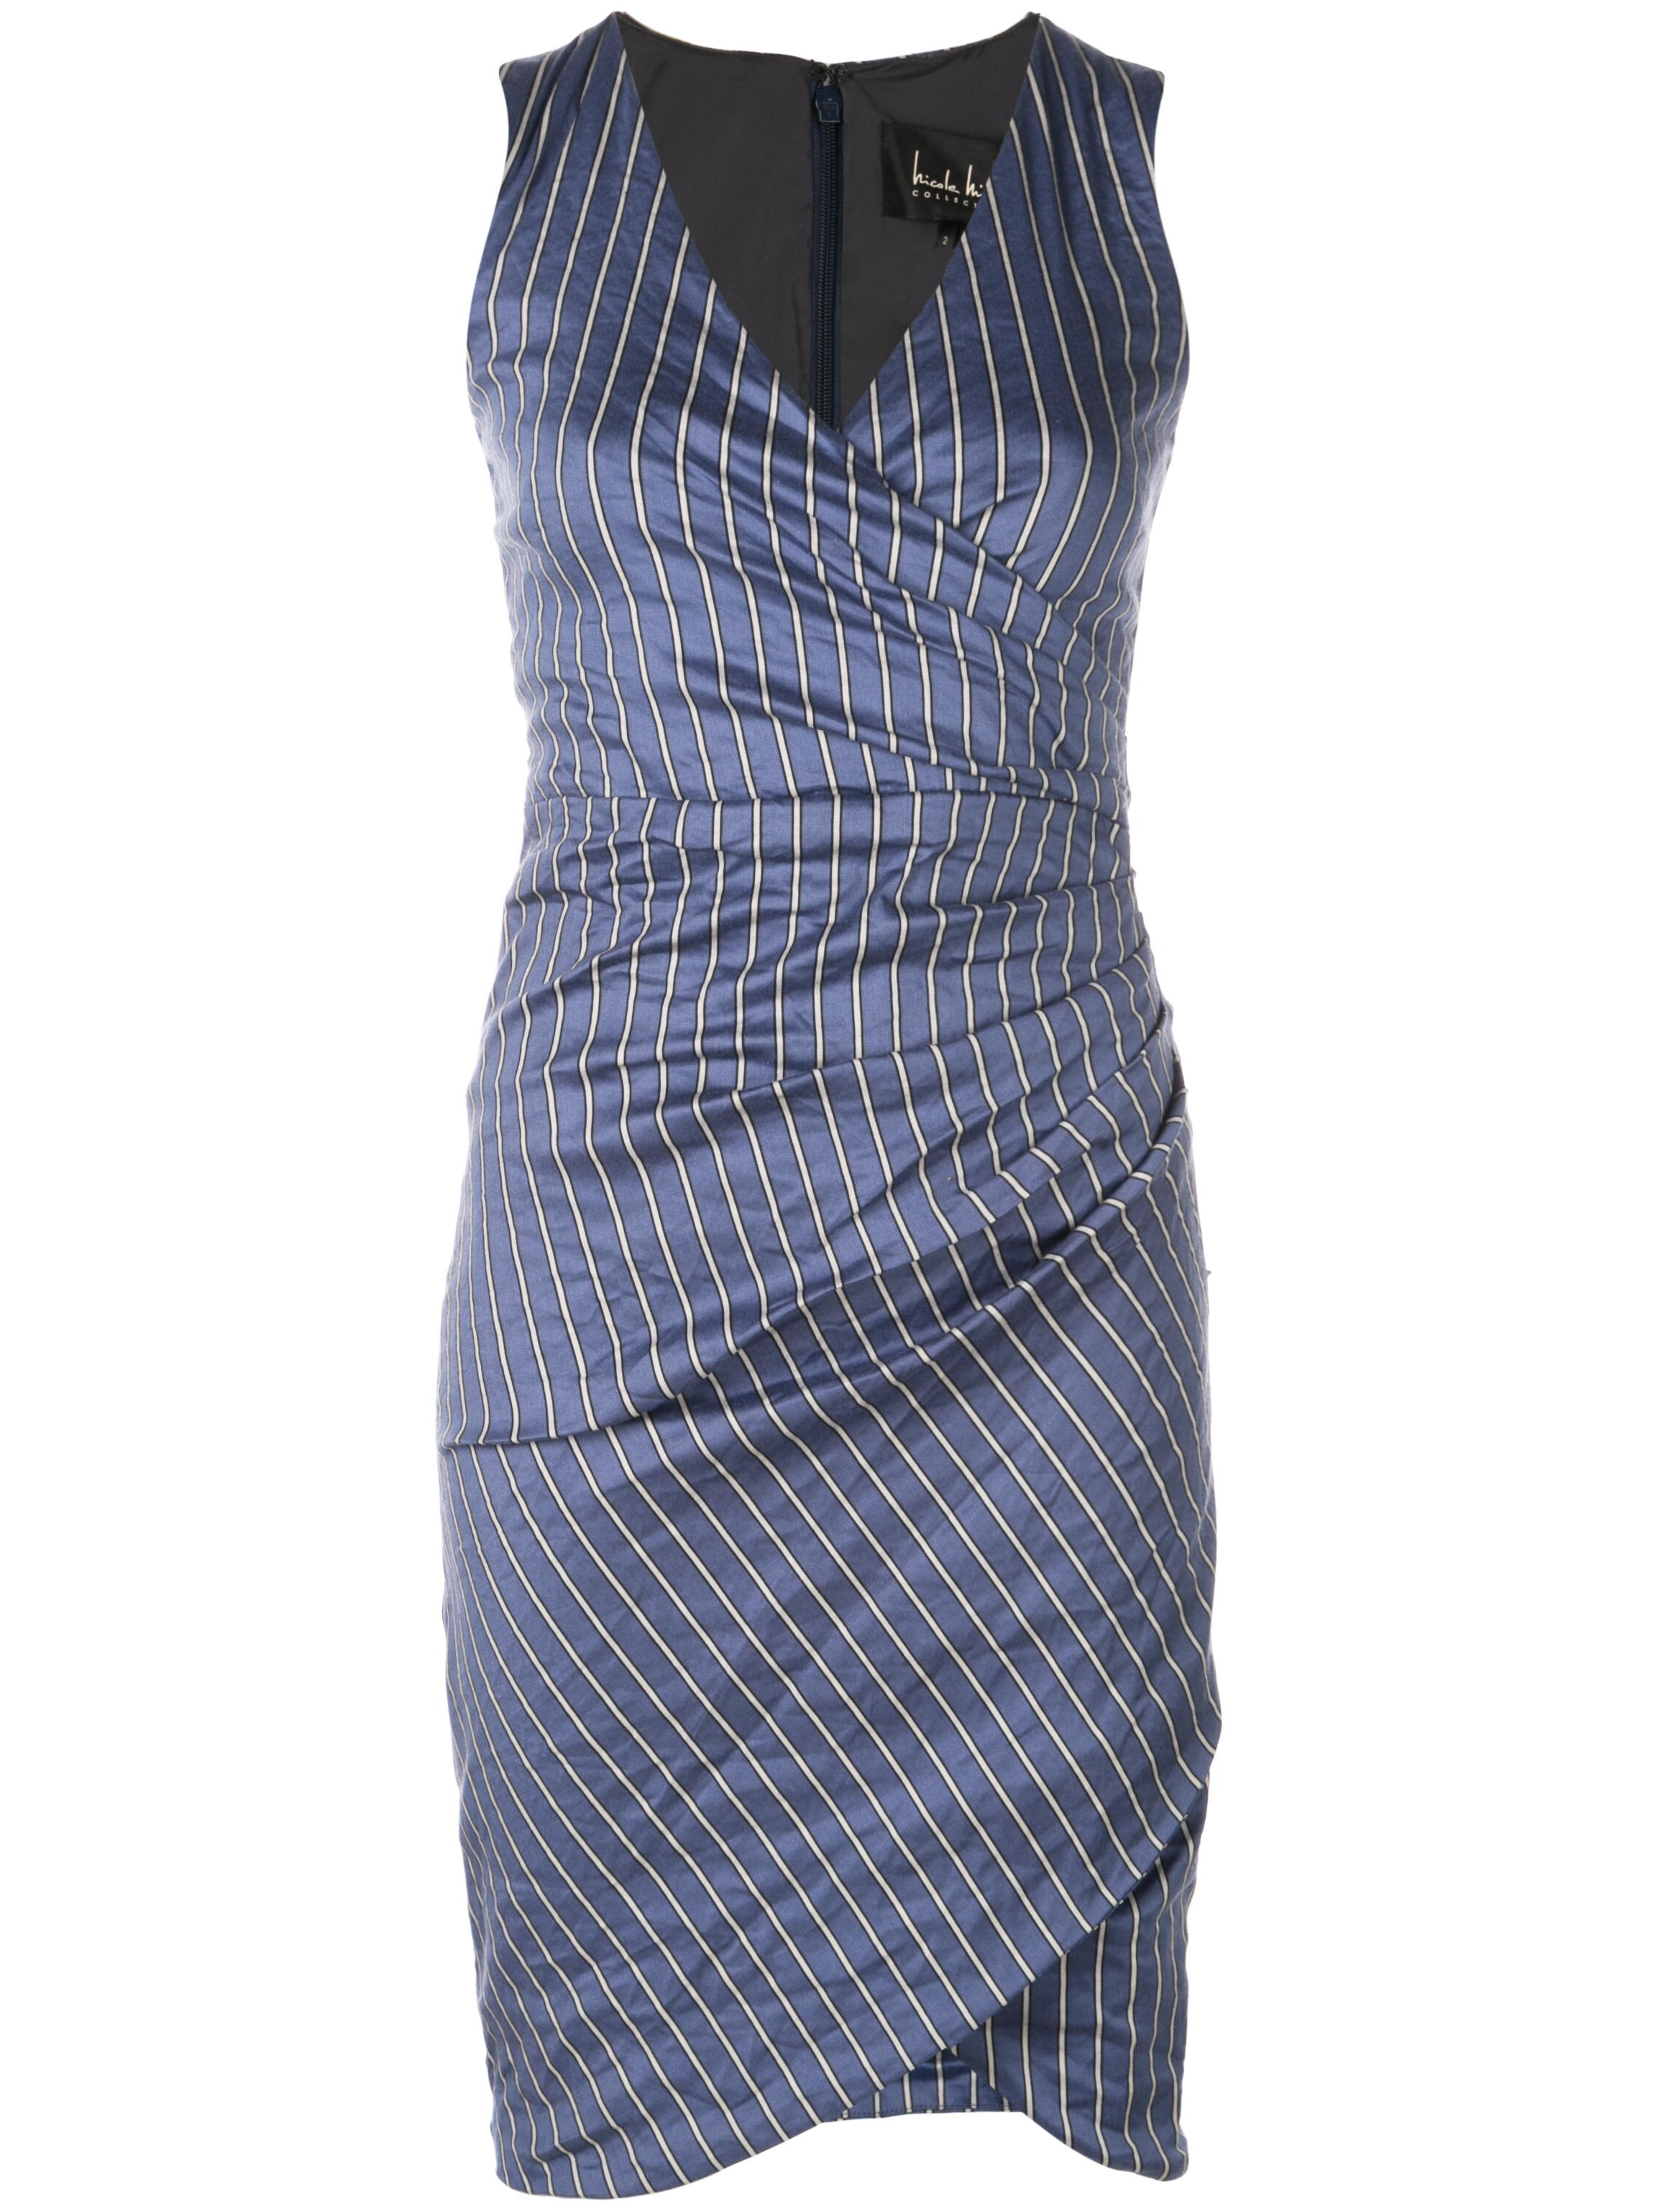 Striped Cotton Metal Stefani Dress Item # CC10190